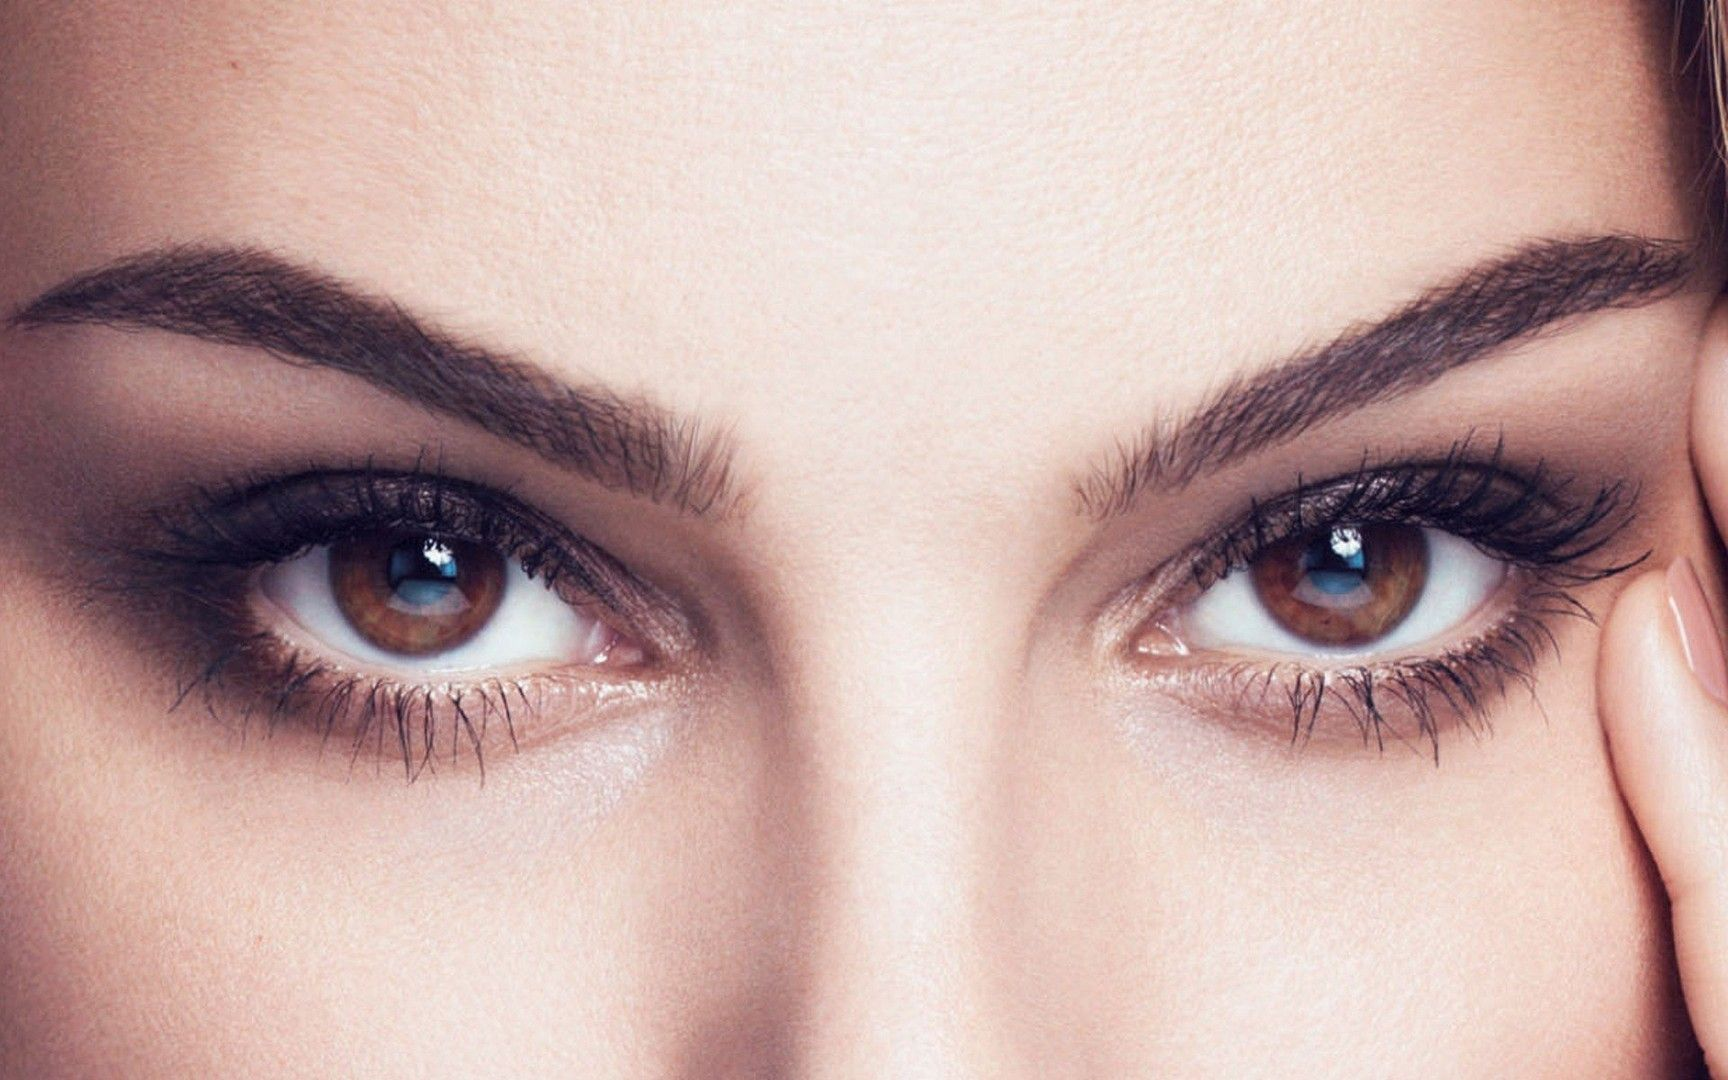 brown eyes wallpaper eyes wallpapers hd eyes eyes wallpaper